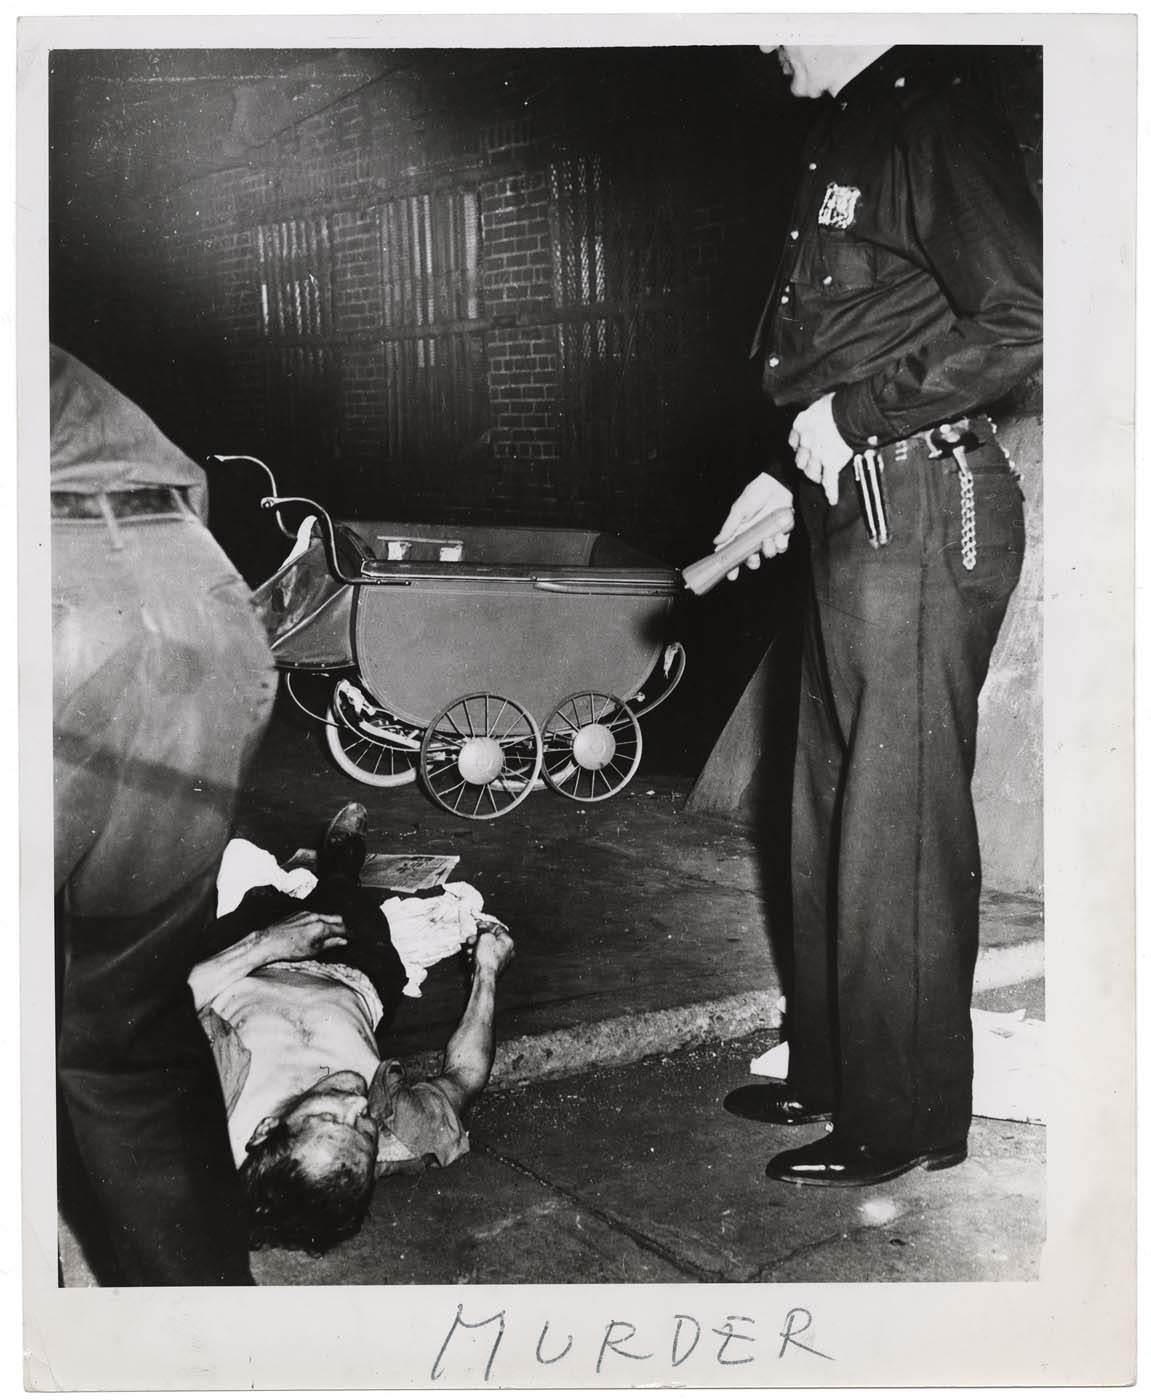 Murder, ca. 1940. Taken by Weegee. (Courtesy: International Center of